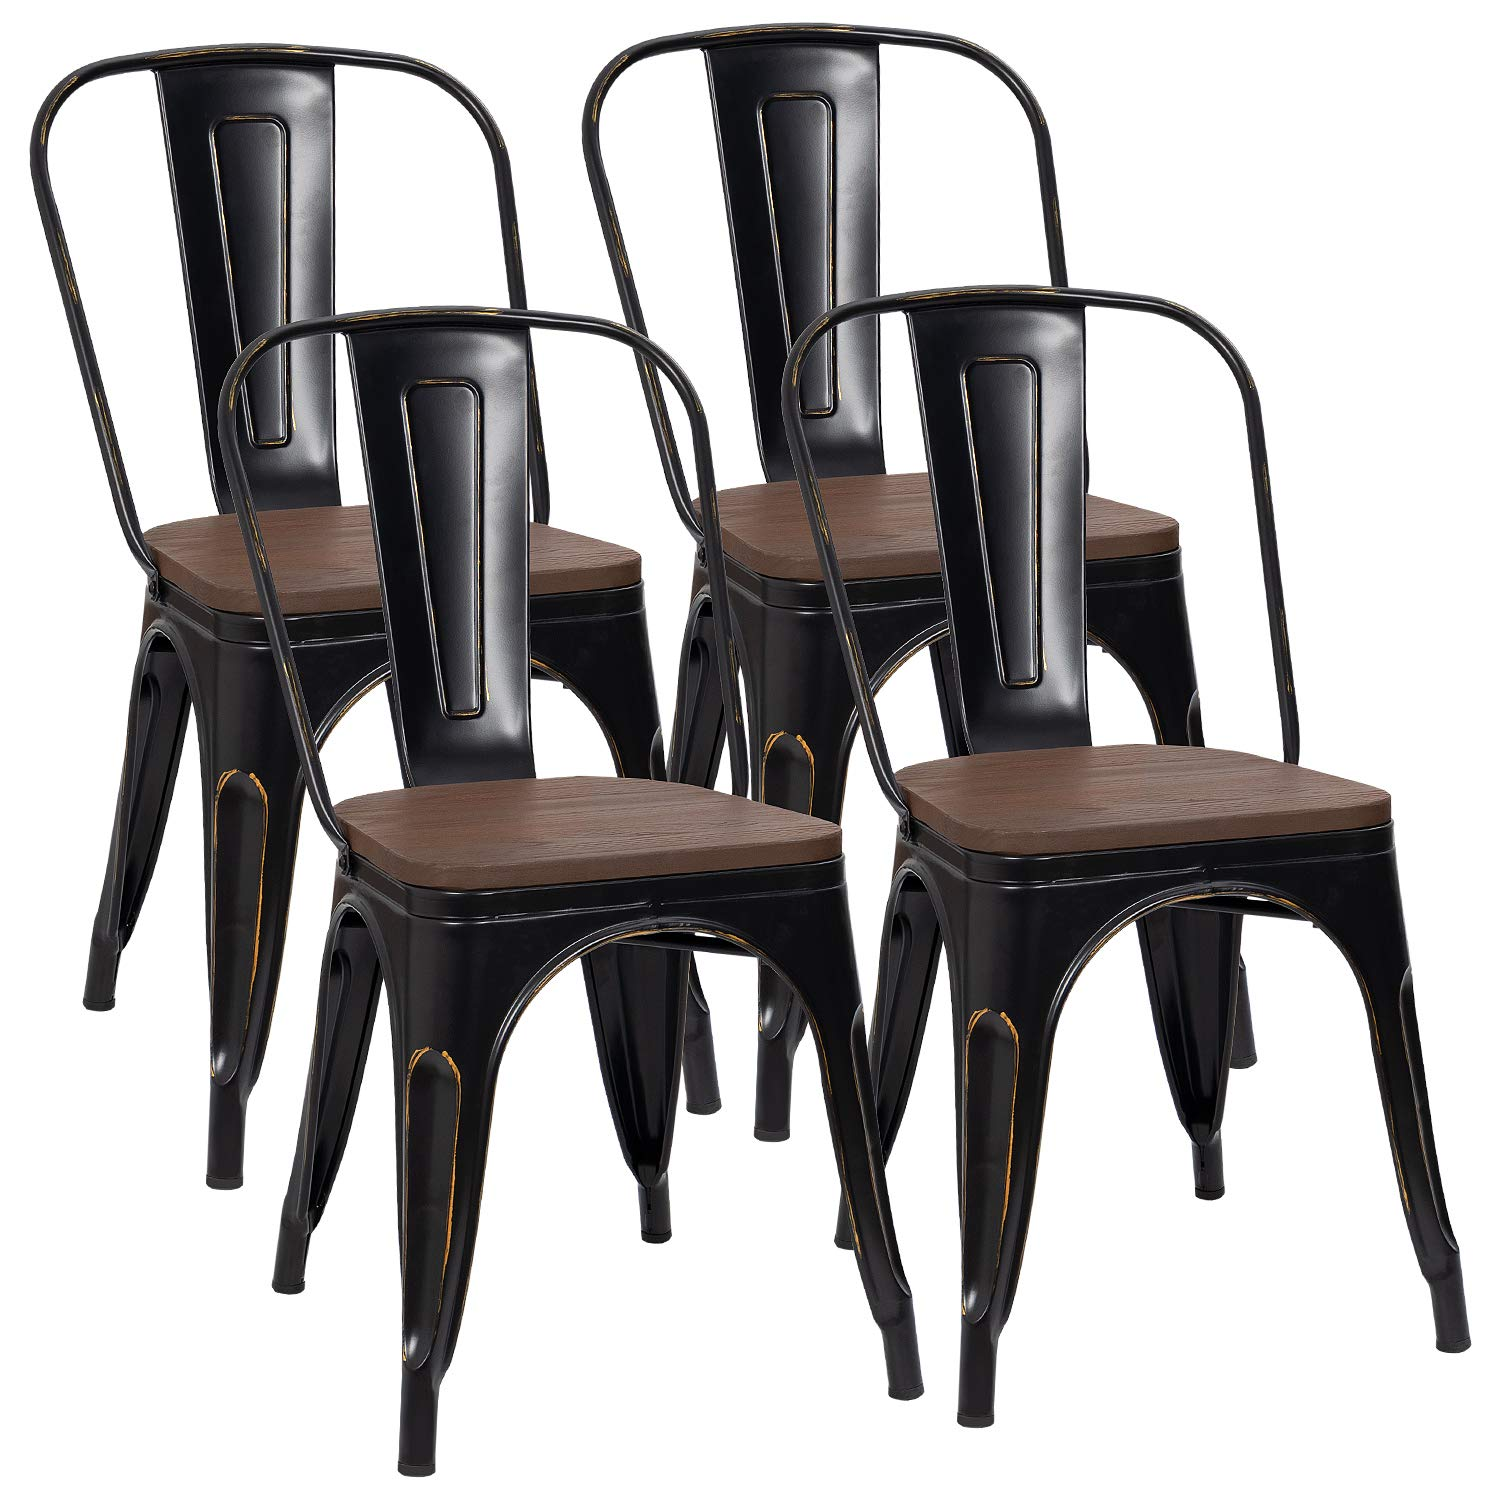 Furmax Metal Dining Chair with Wood Seat,Indoor-Outdoor Use Stackable Chic Dining Bistro Cafe Side Metal Chairs (Set of 4) (Black Golden)